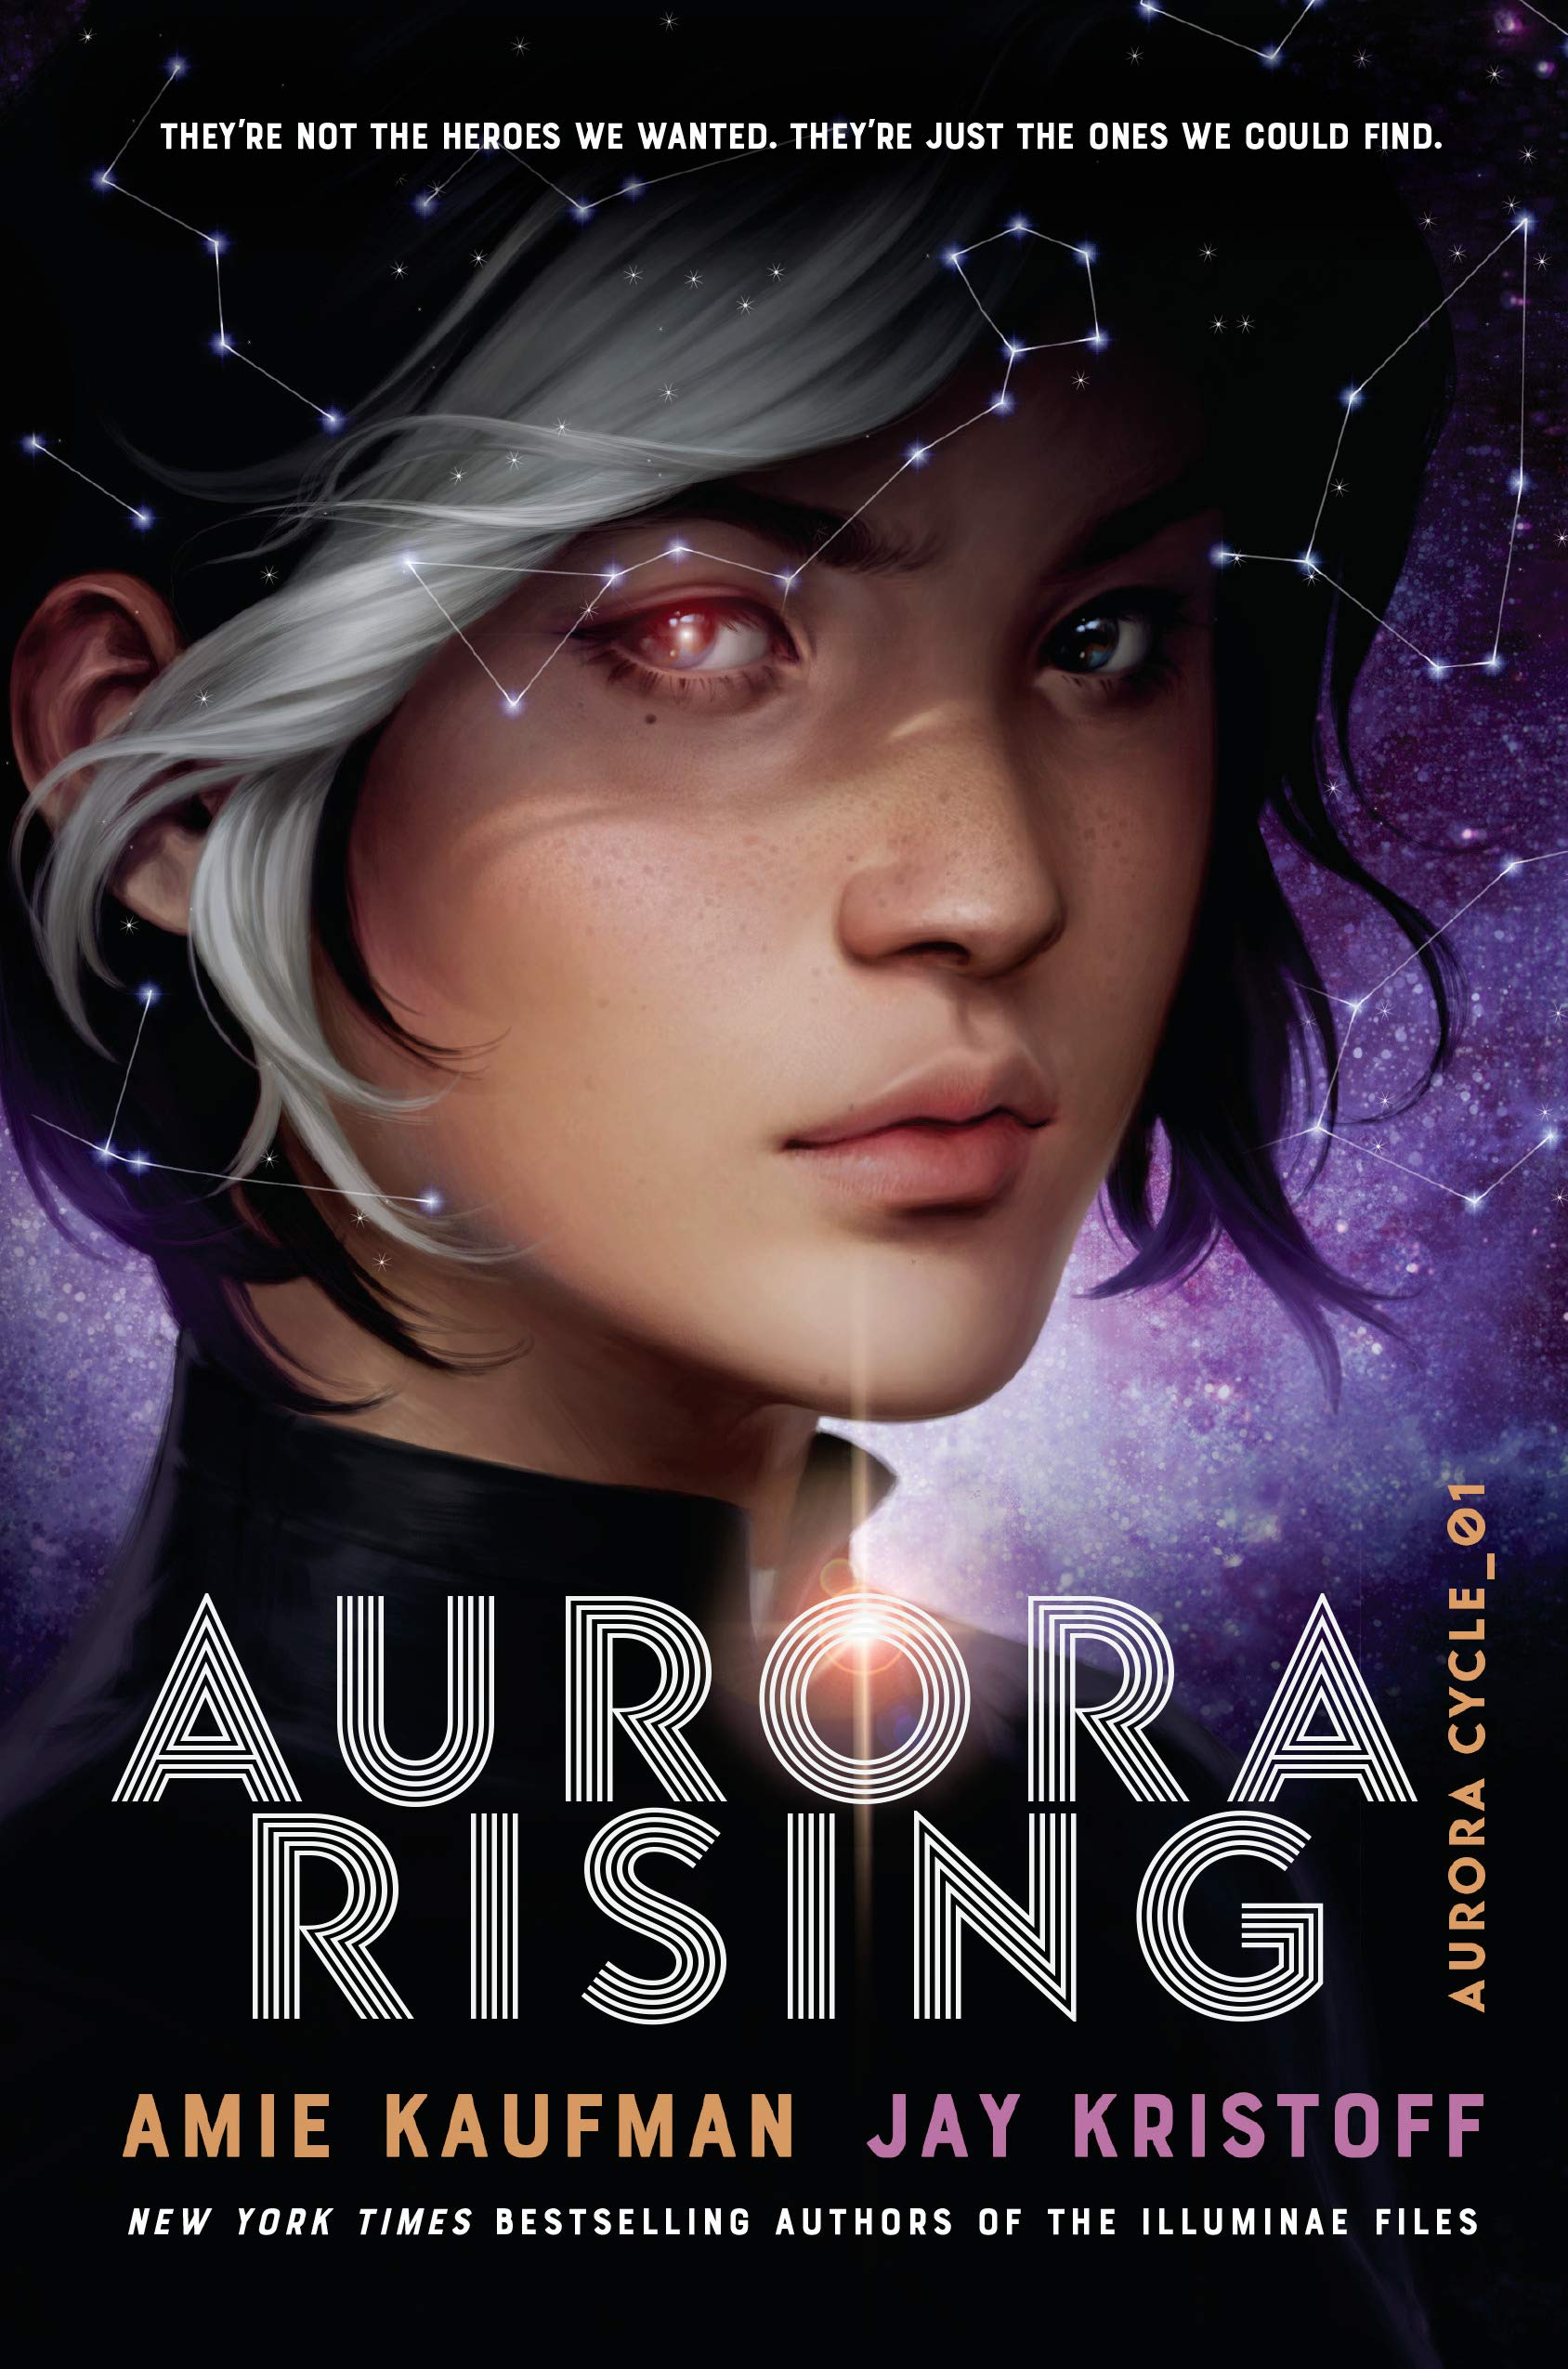 Amazon.com: Aurora Rising (The Aurora Cycle) (9781524720964 ...